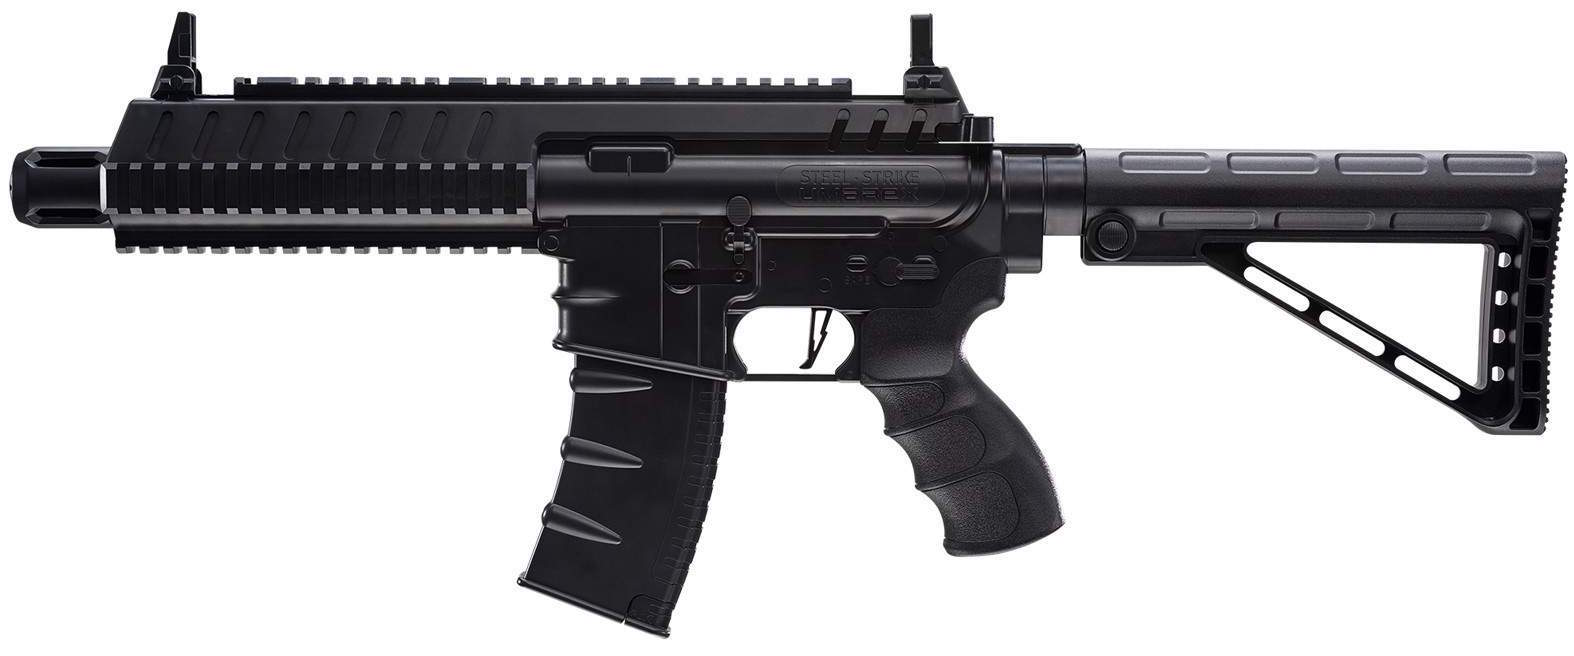 Umarex Steel Strike CO2 Blowback BB Rifle Left Side.jpg